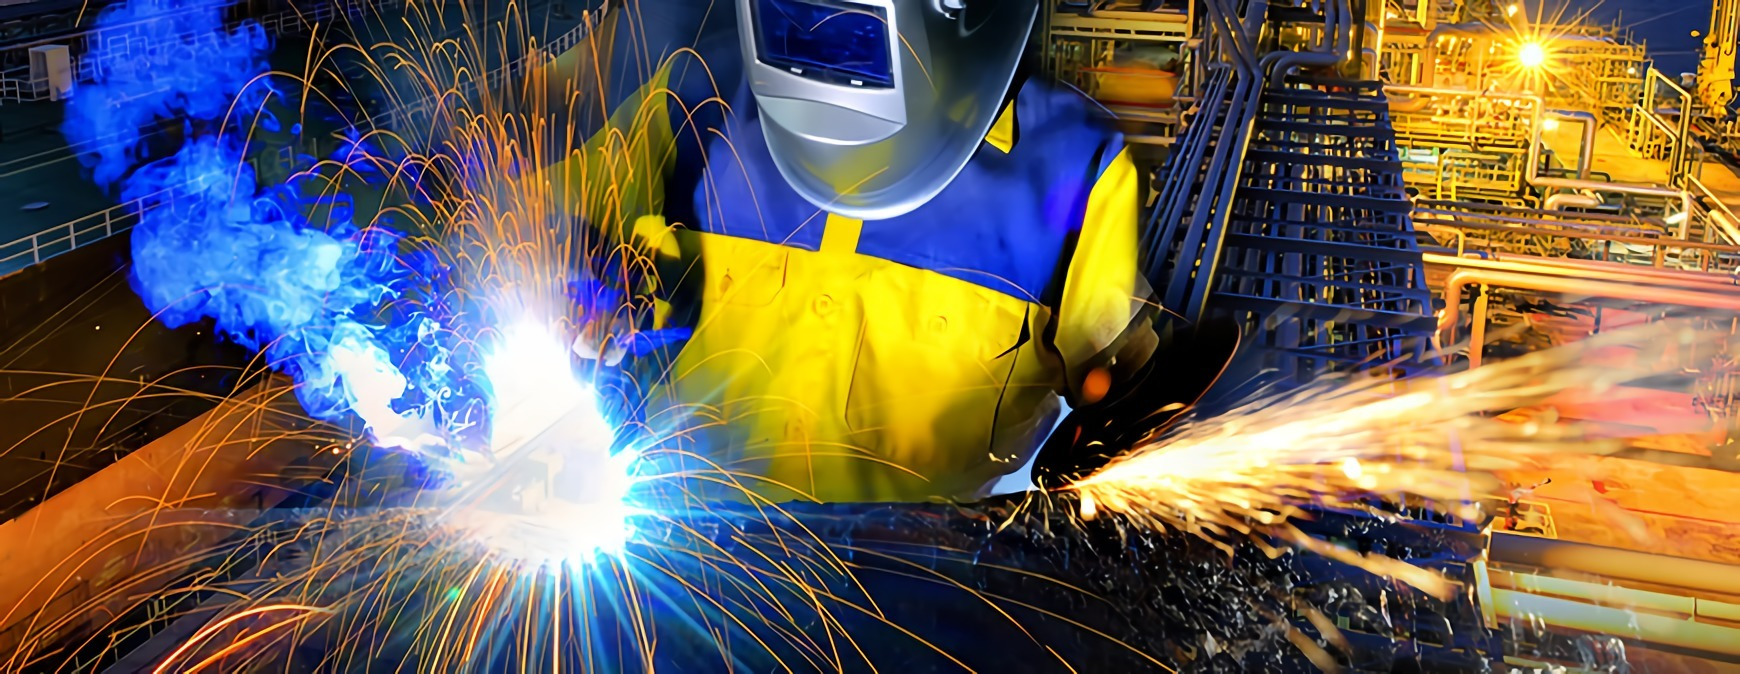 welder in industry